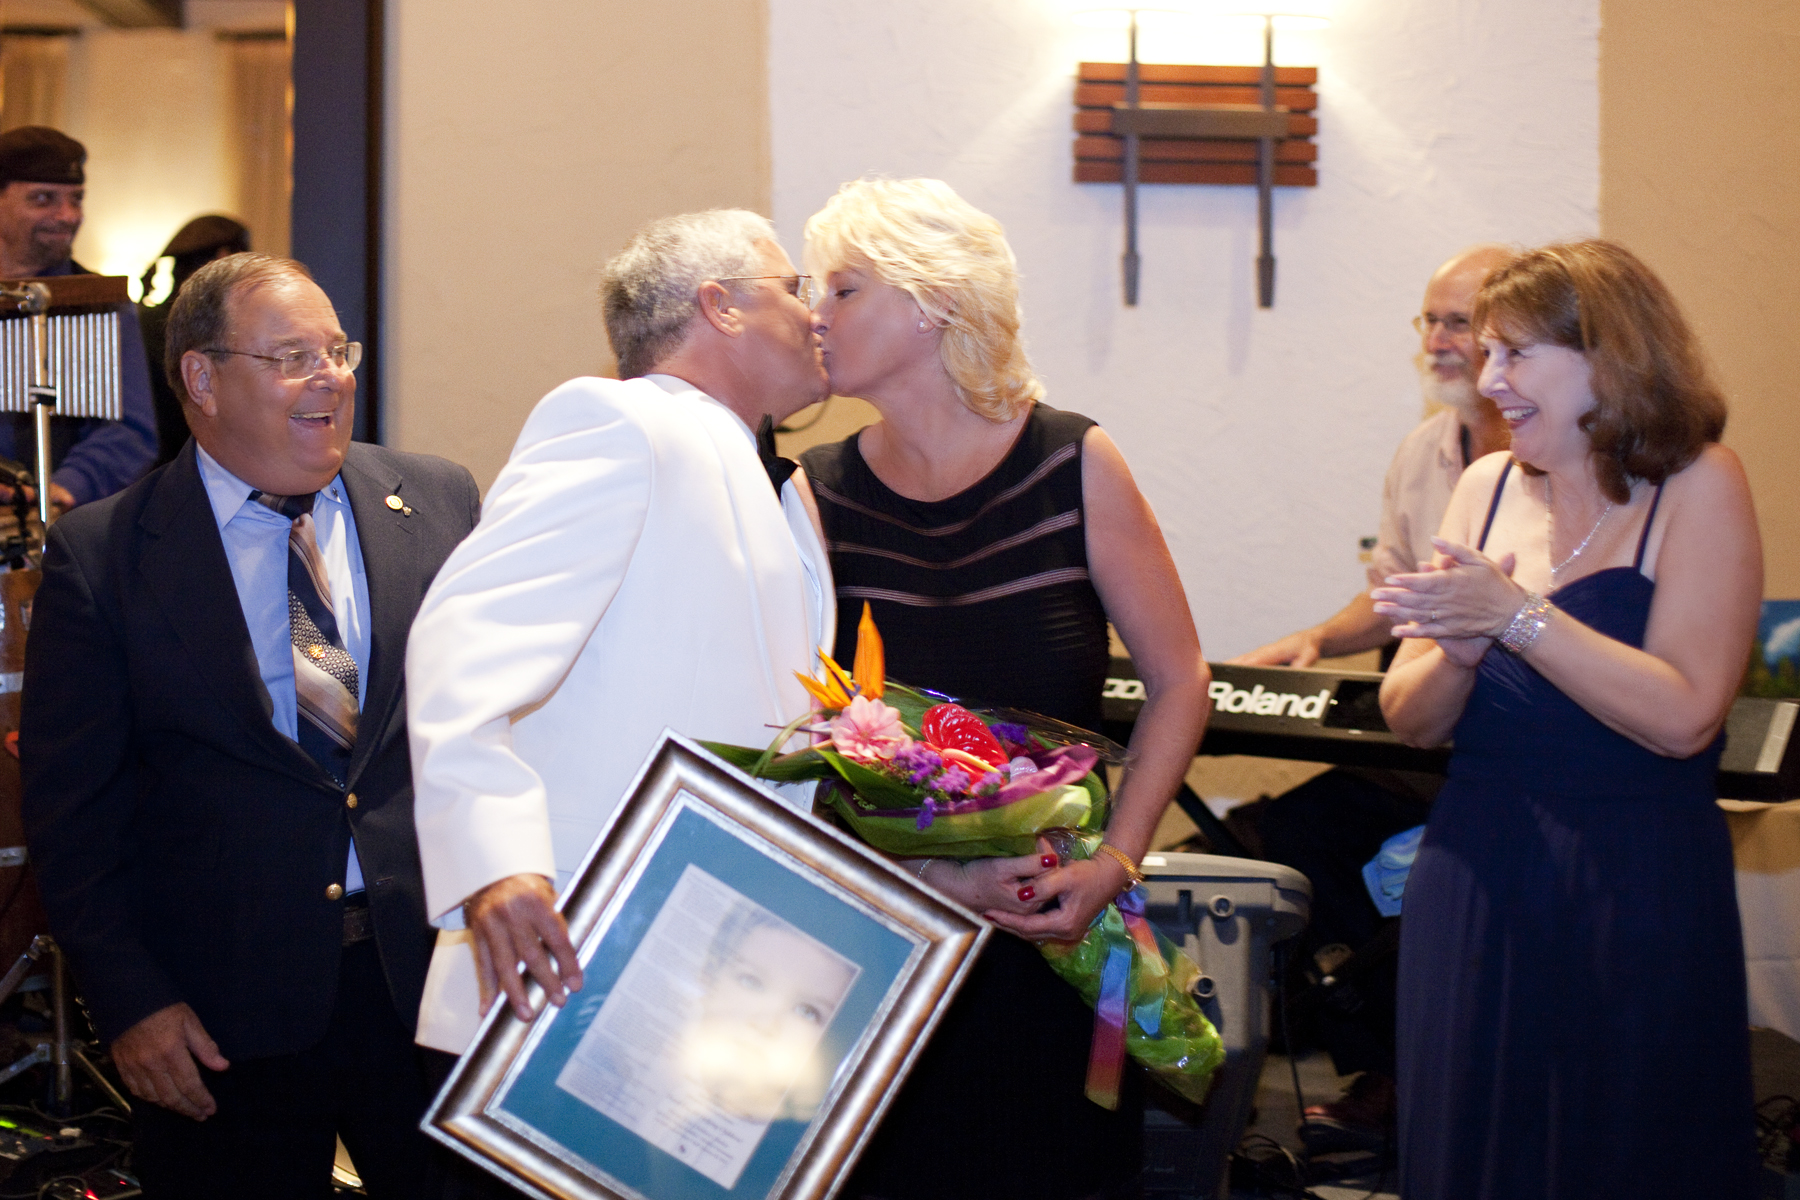 special-moment-honorary-host-and-hostess-with-puto-and-tuell